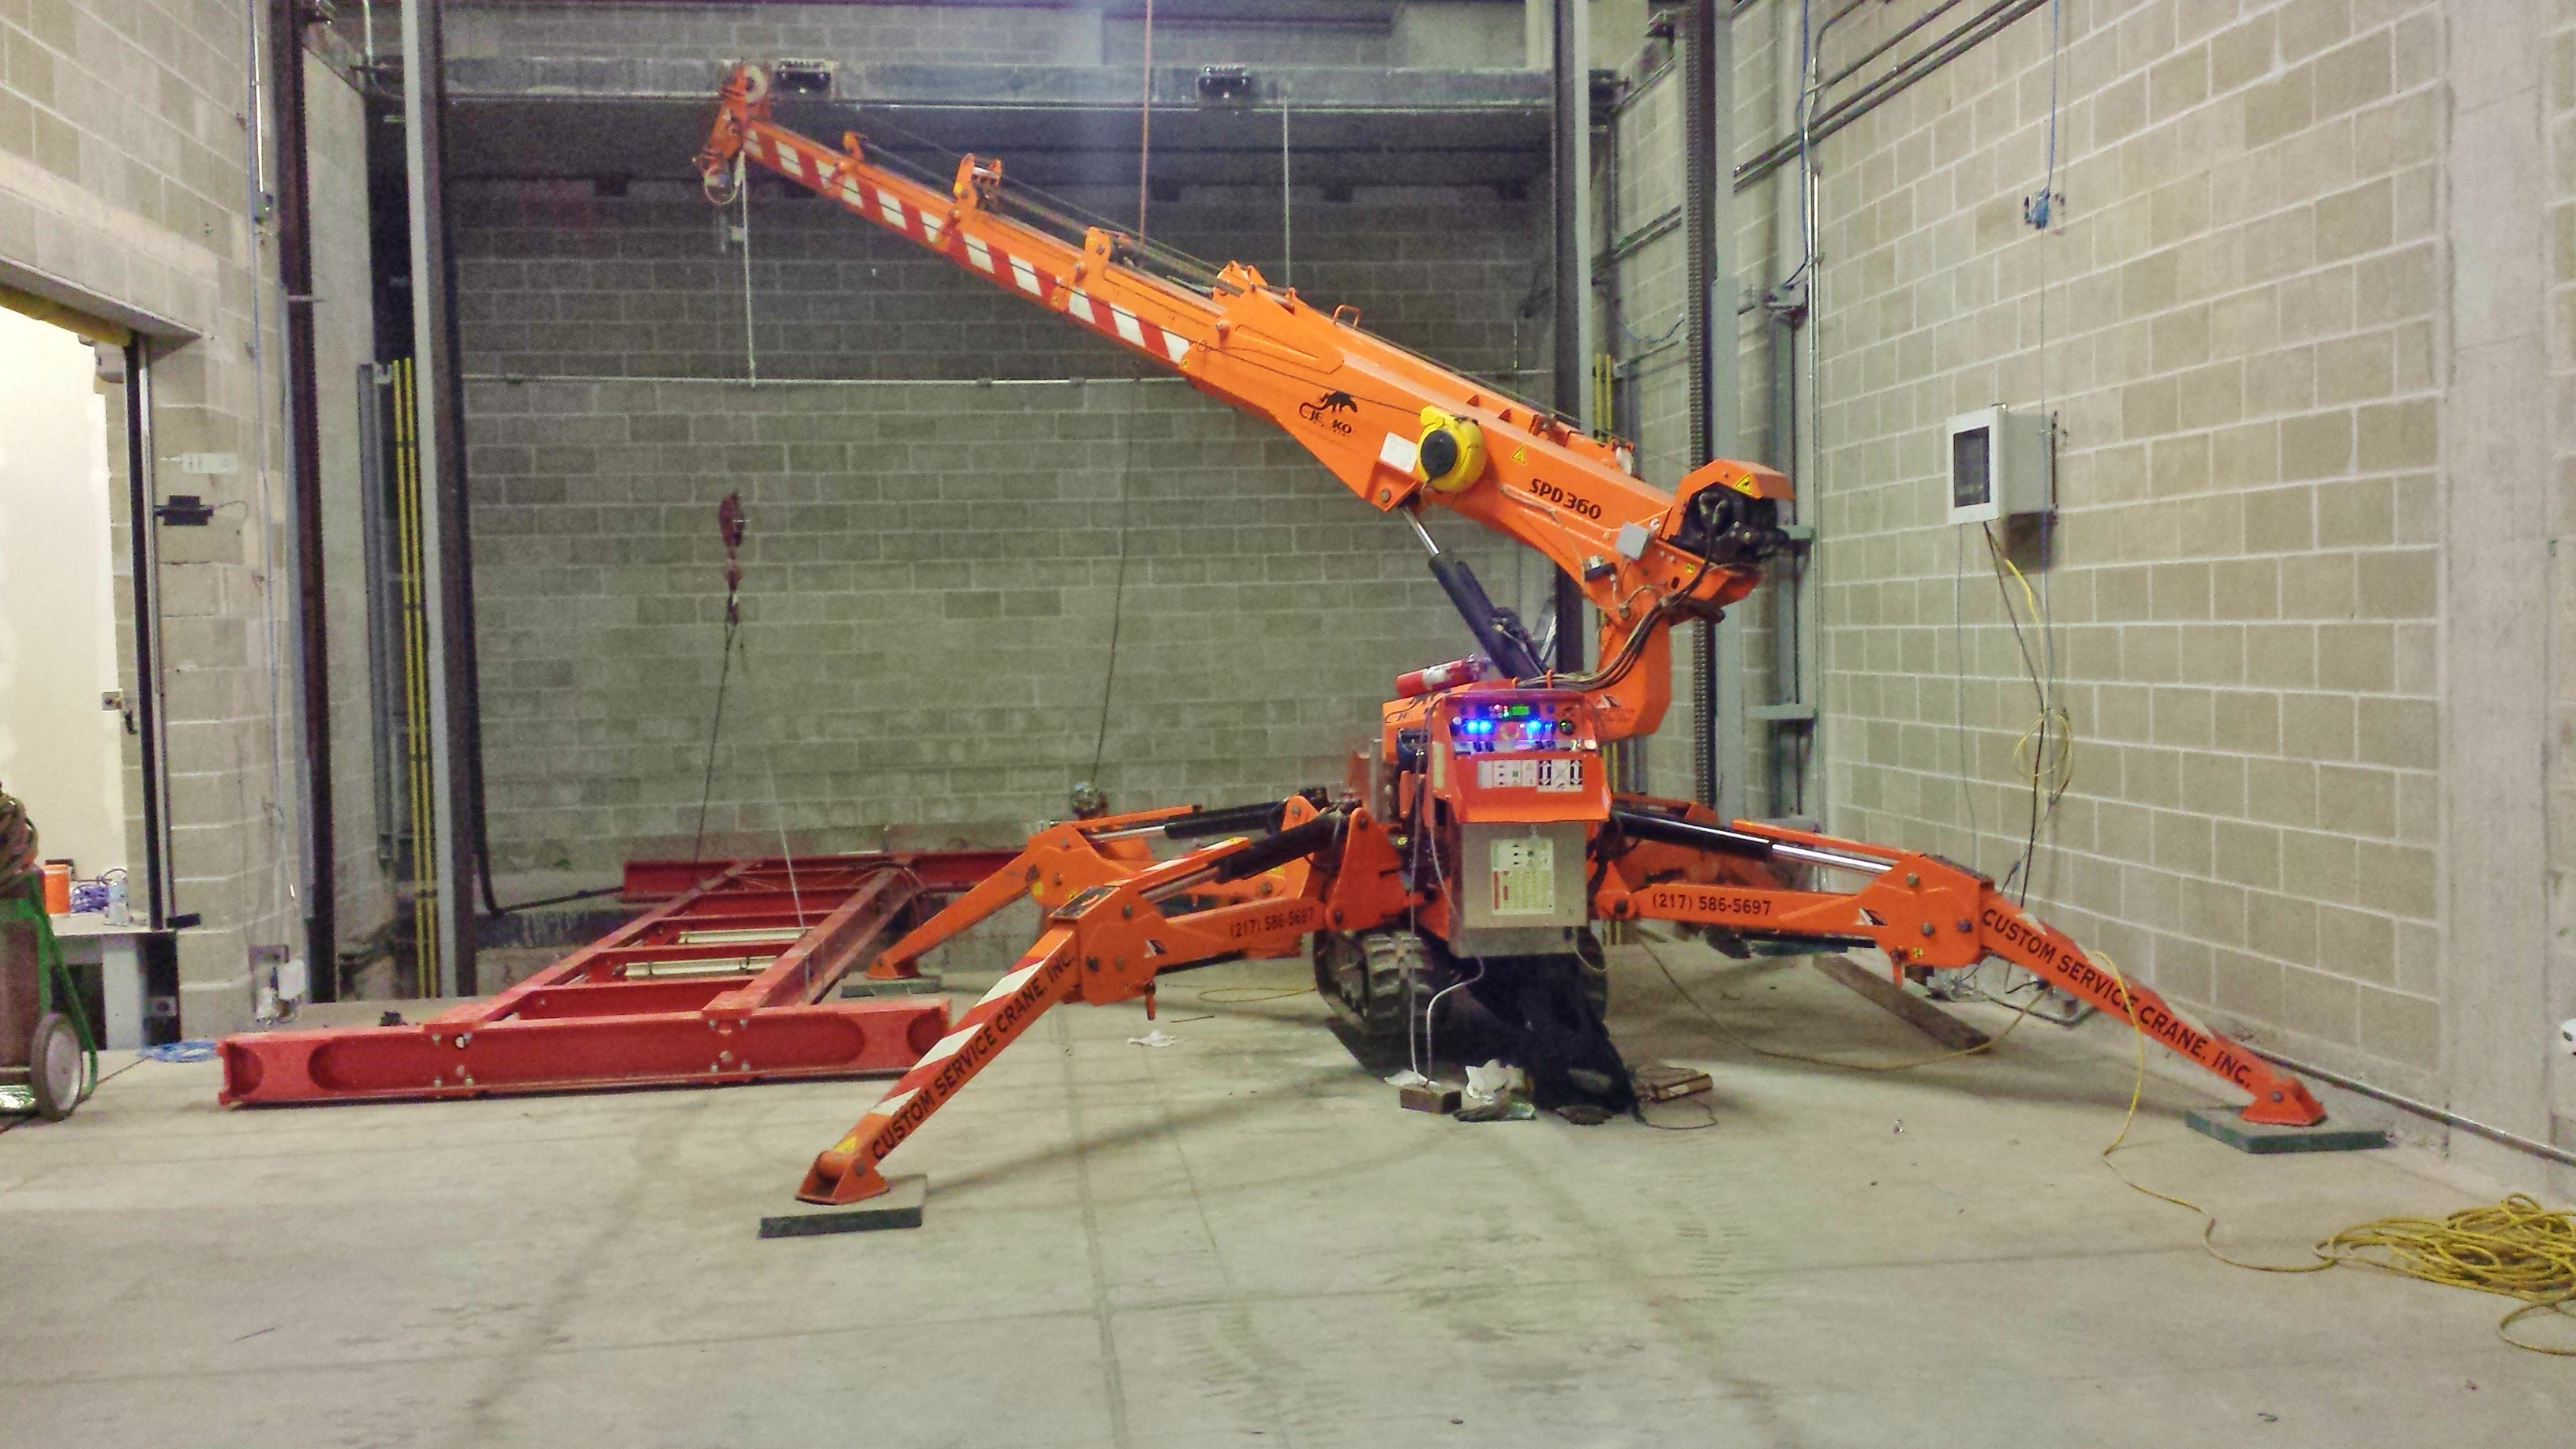 Jekko mini crane is installing an automated parking garage in Champaign, IL.